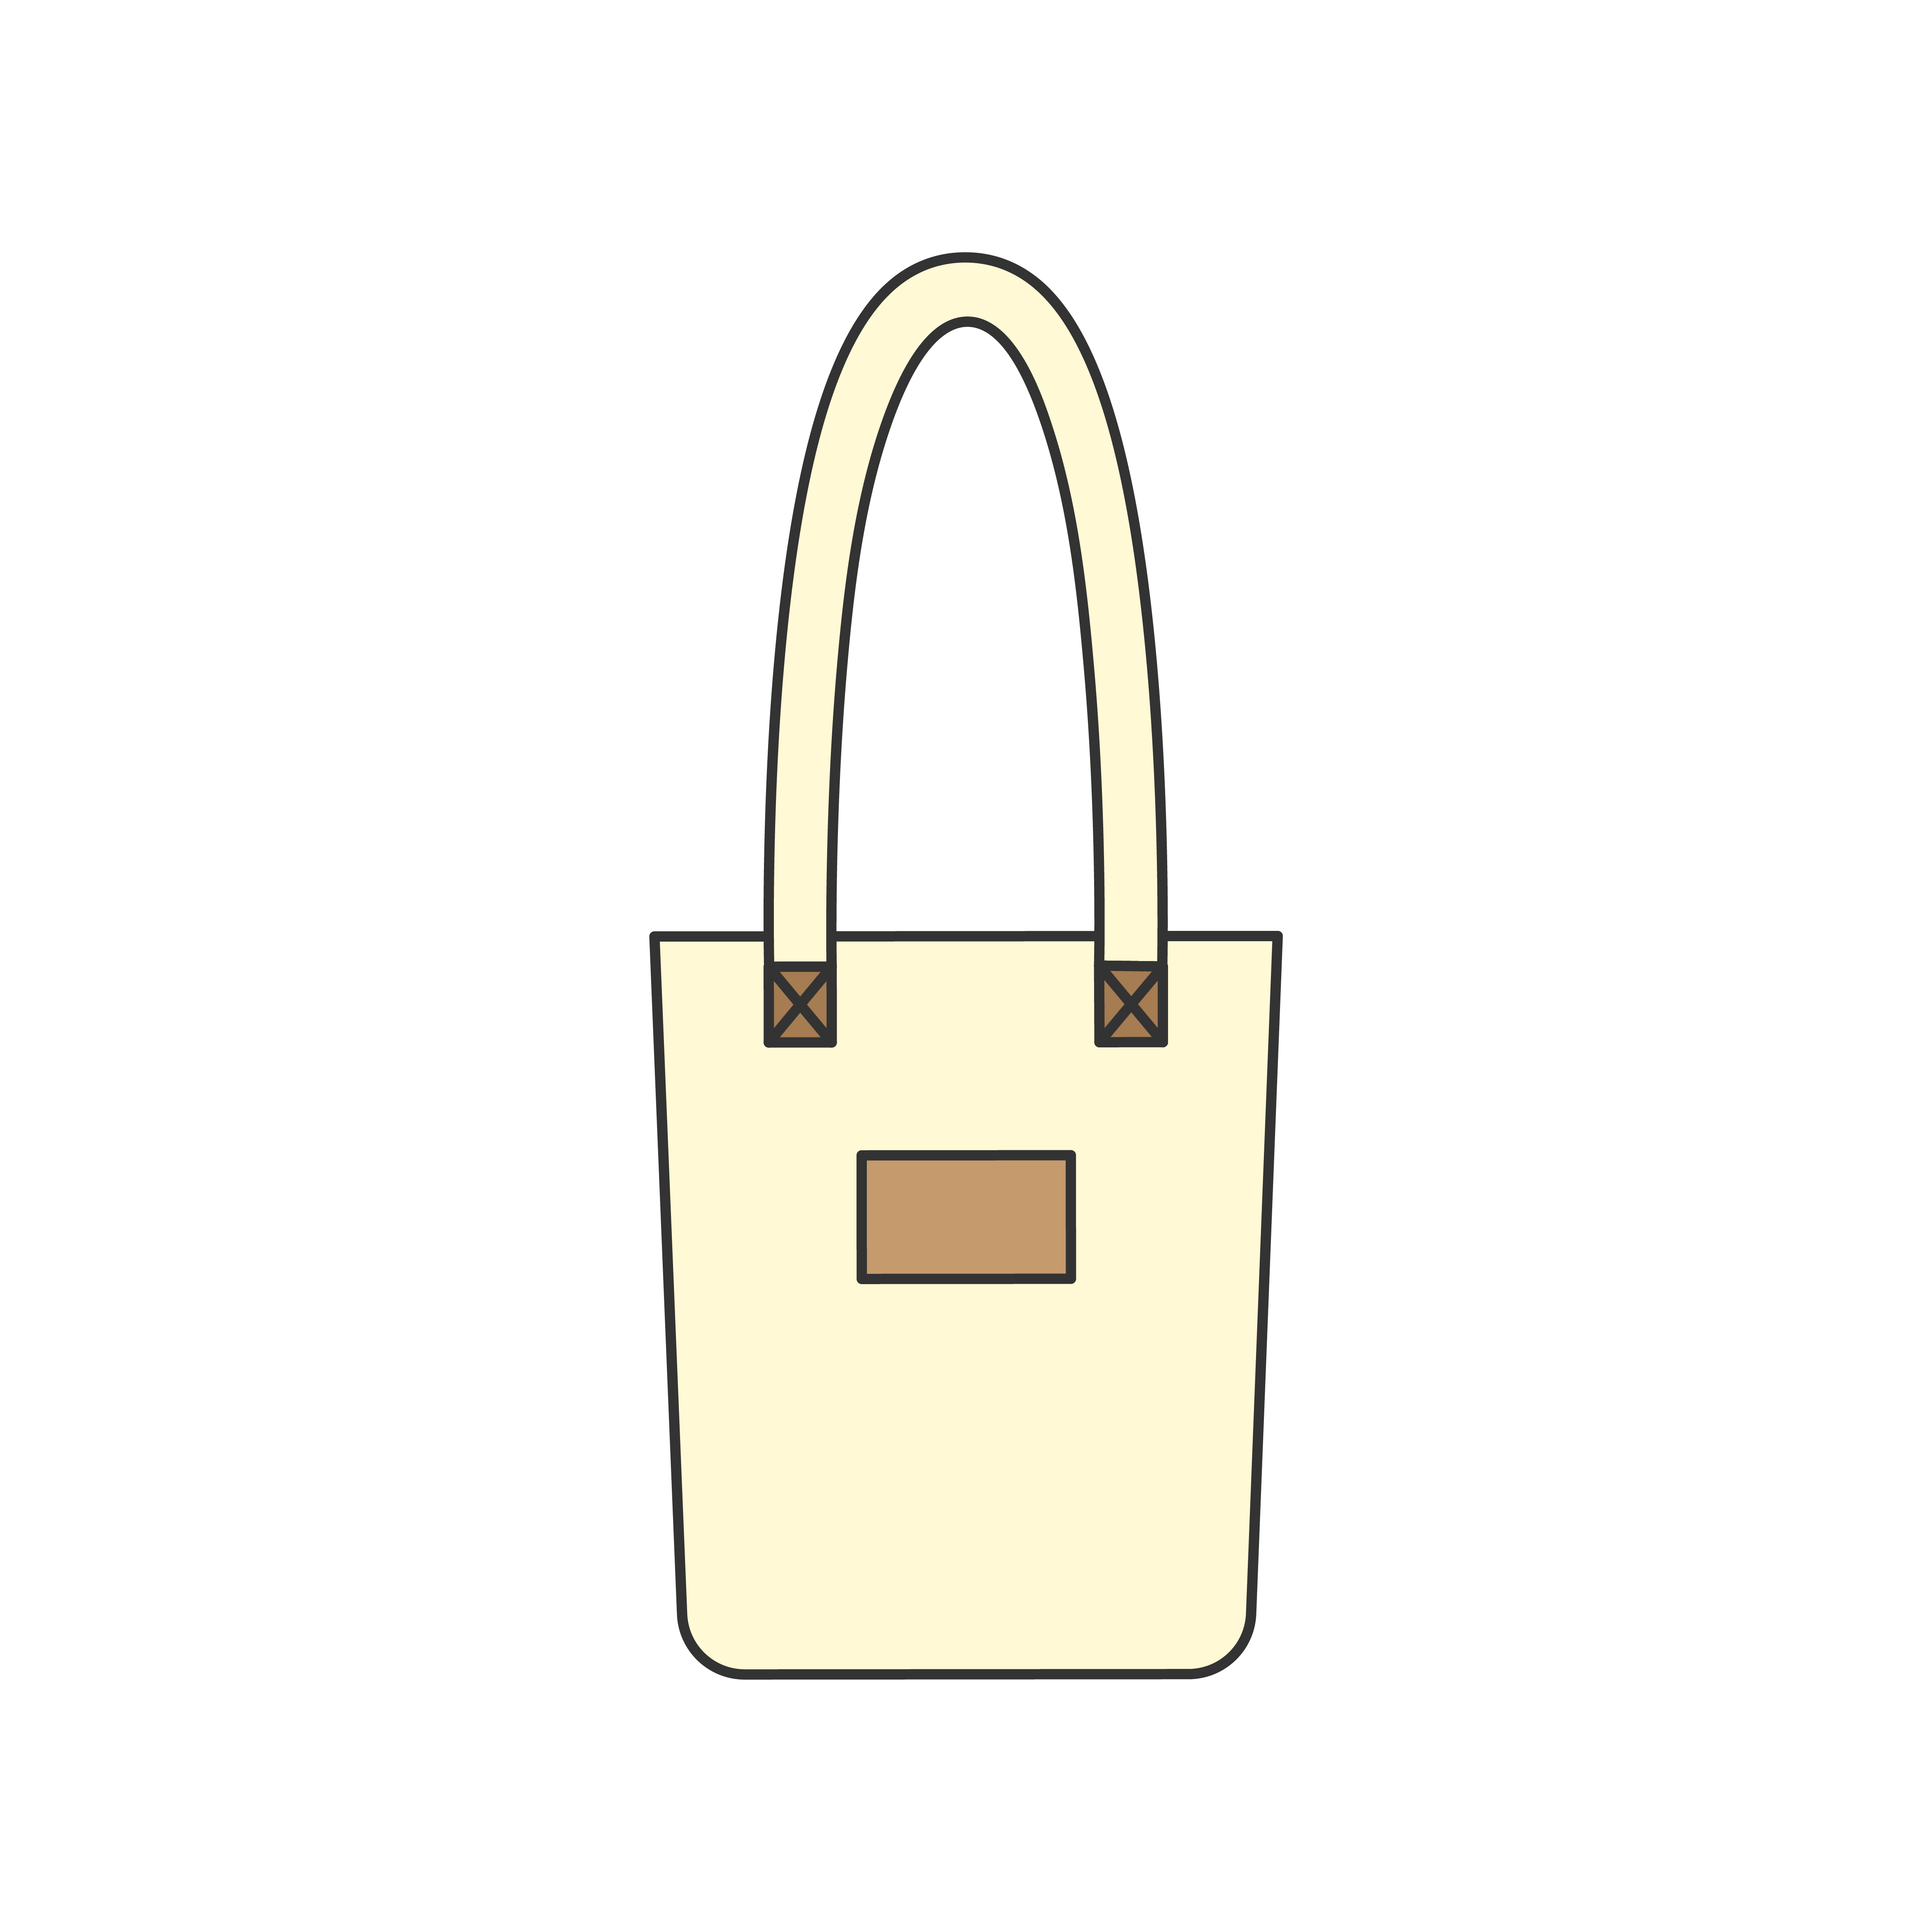 Ilration Of A Tote Bag